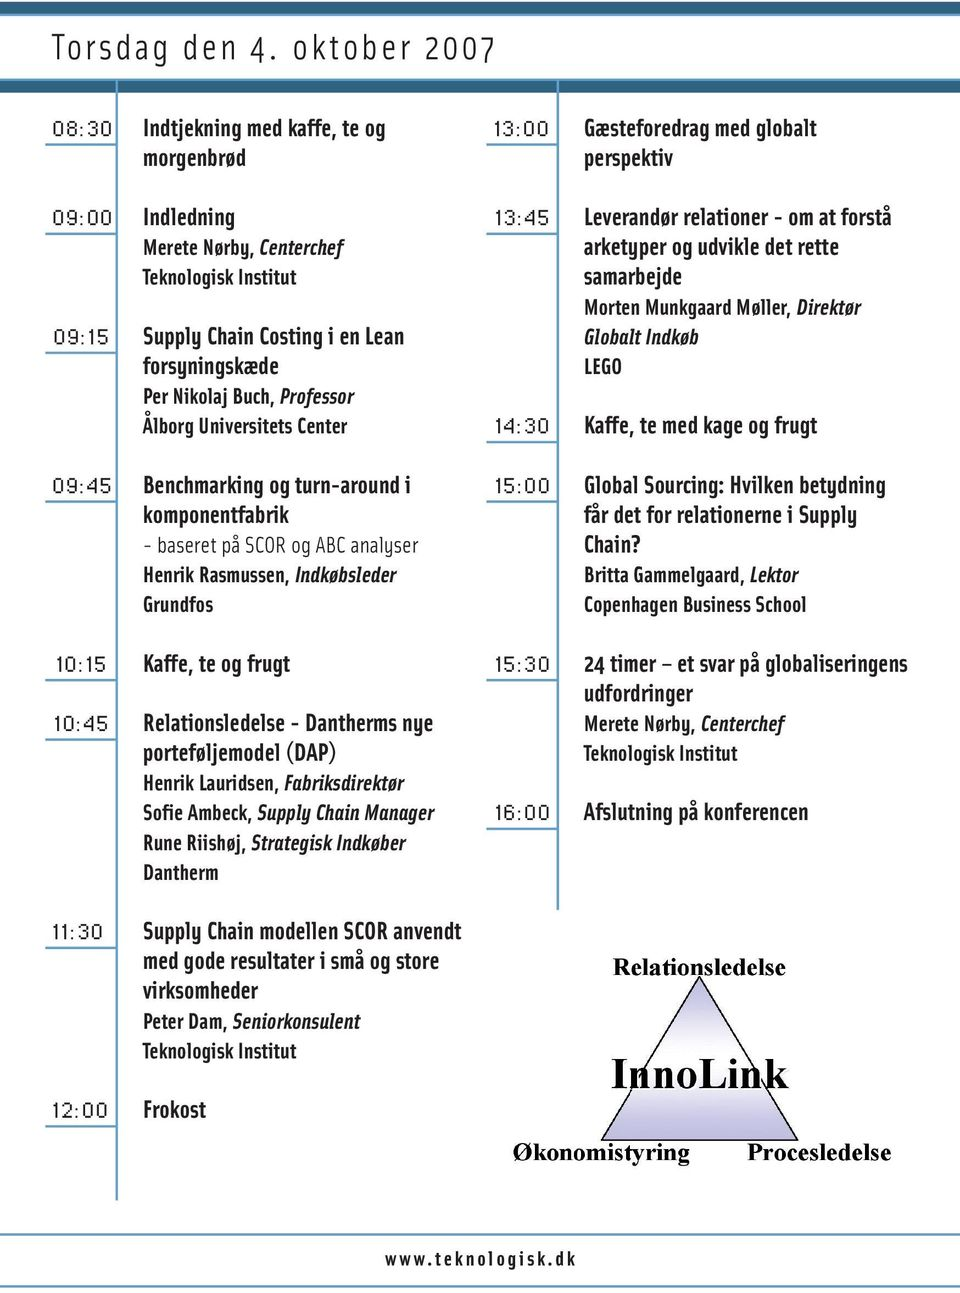 Universitets Center 09:45 Benchmarking og turn-around i komponentfabrik - baseret på SCOR og ABC analyser Henrik Rasmussen, Indkøbsleder Grundfos 10:15 Kaffe, te og frugt 10:45 Relationsledelse -